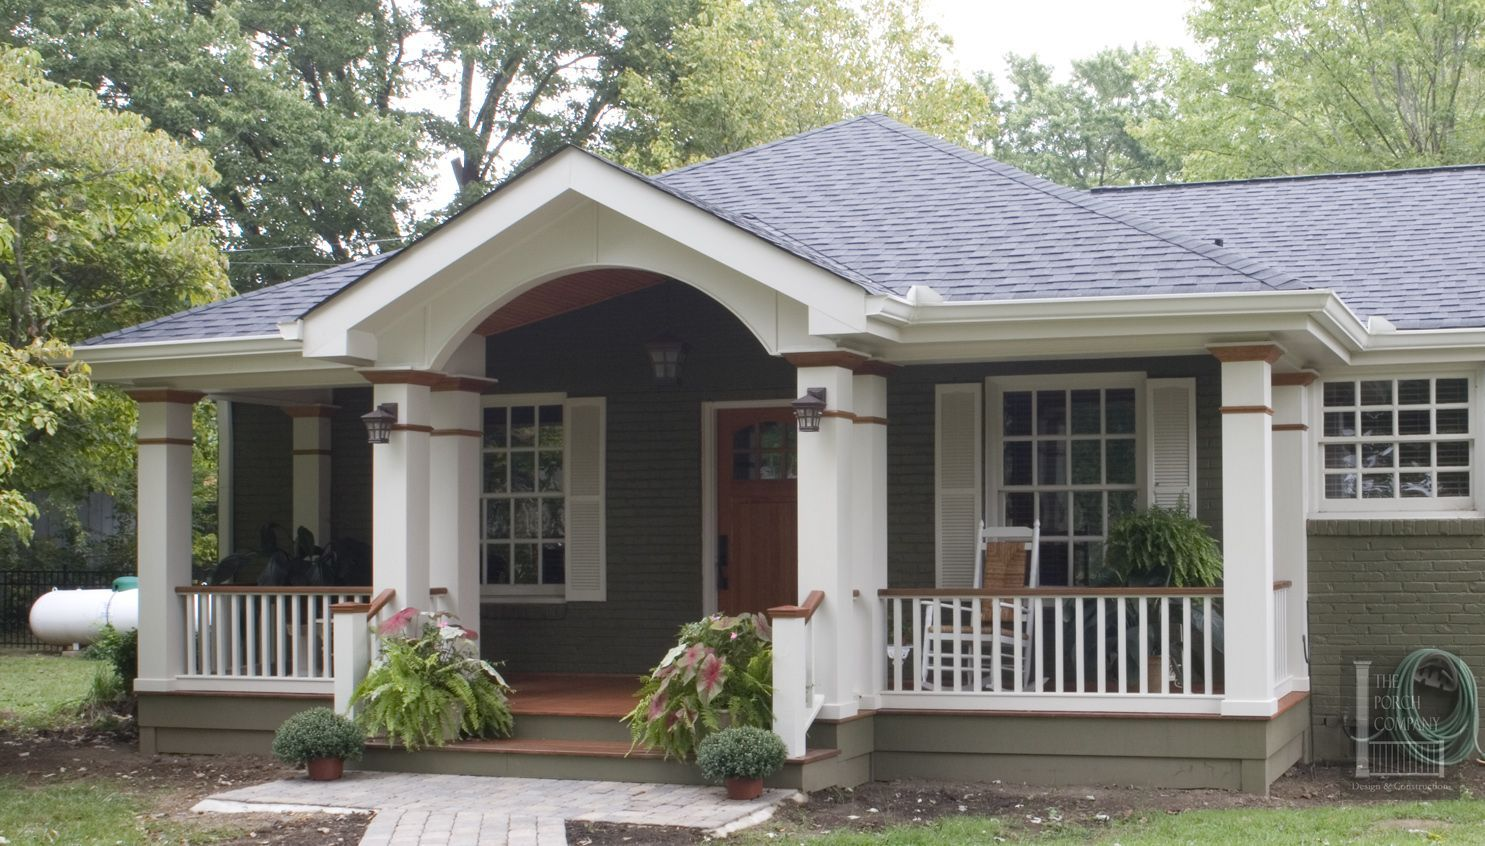 front porch ideas for low pitch roofs - Google Search  Porch roof